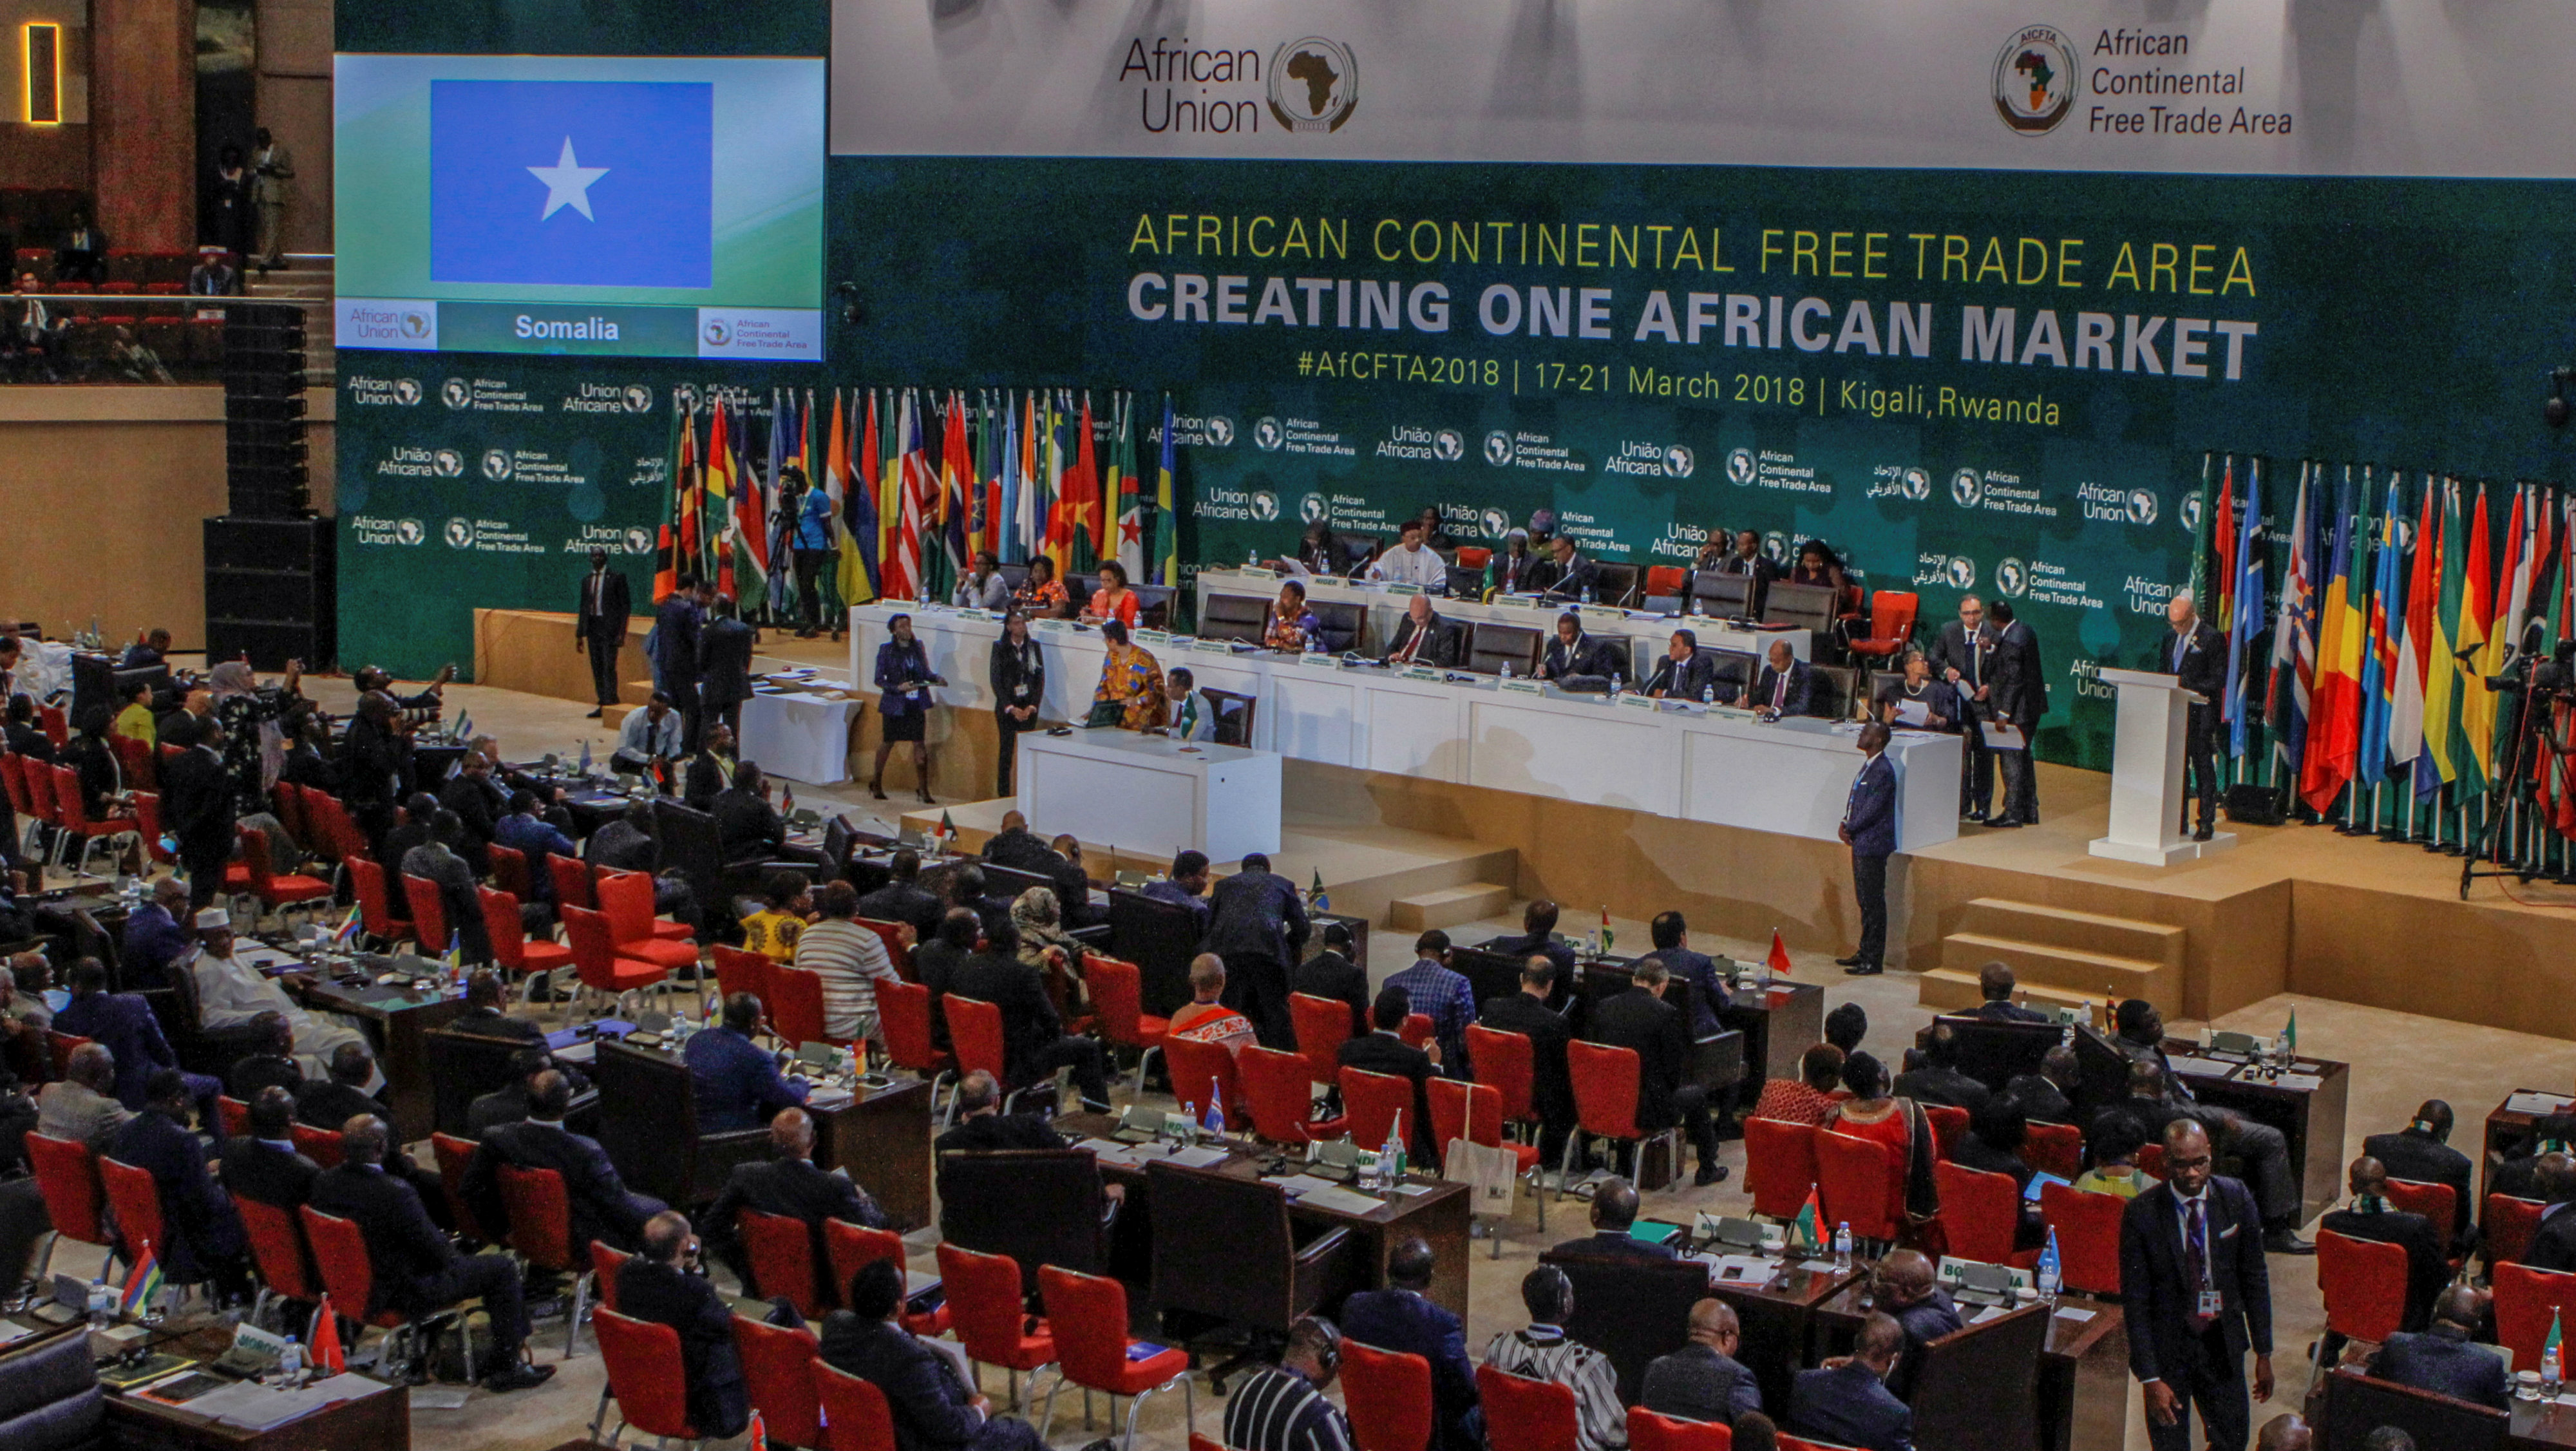 African leaders attend a meeting to sign a free trade deal that would create a liberalized market for goods and services across the continent, in Kigali, Rwanda March 21, 2018.